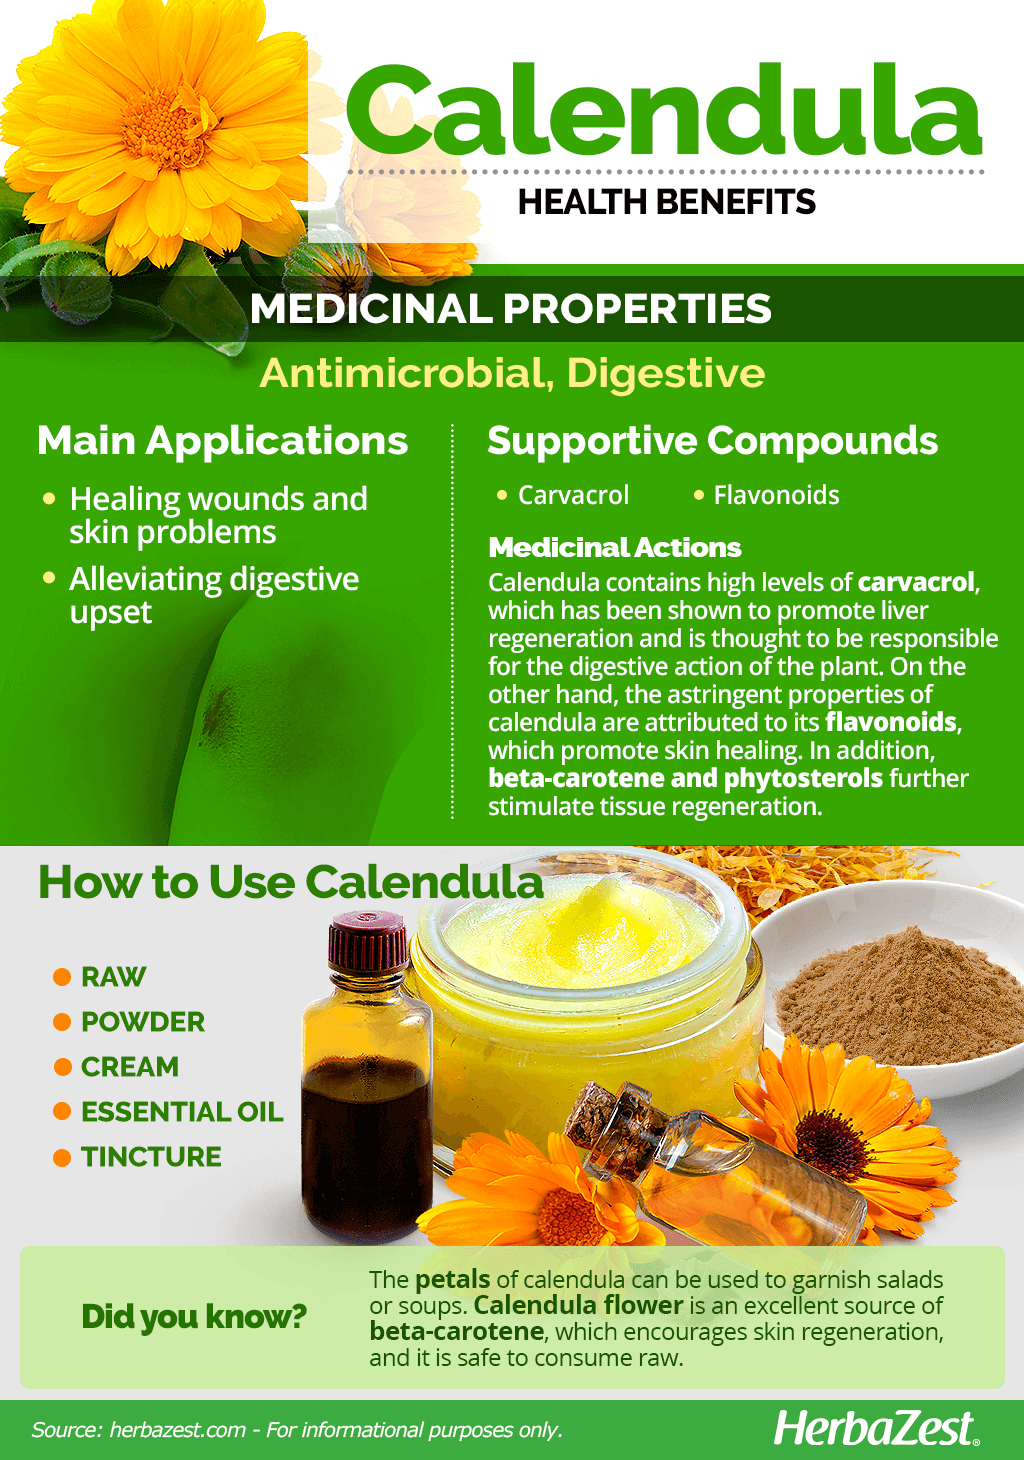 All About Calendula